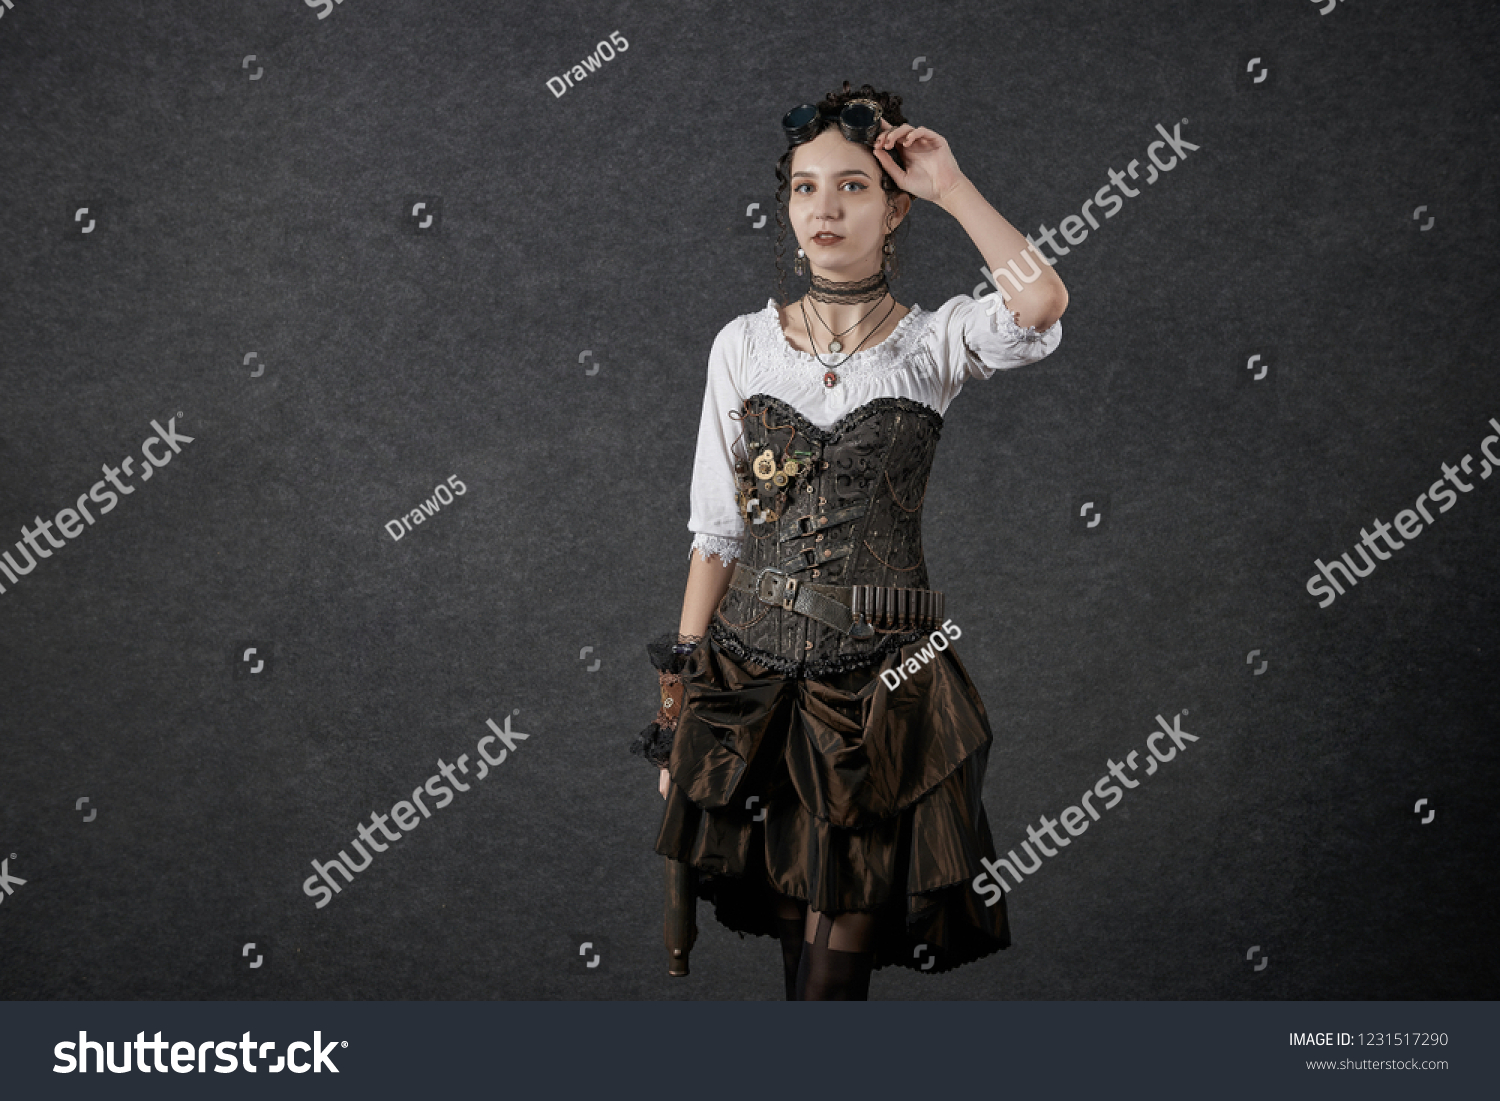 Cosplayer young woman dressed steampunk style shoot on black background in  photo zone - Image